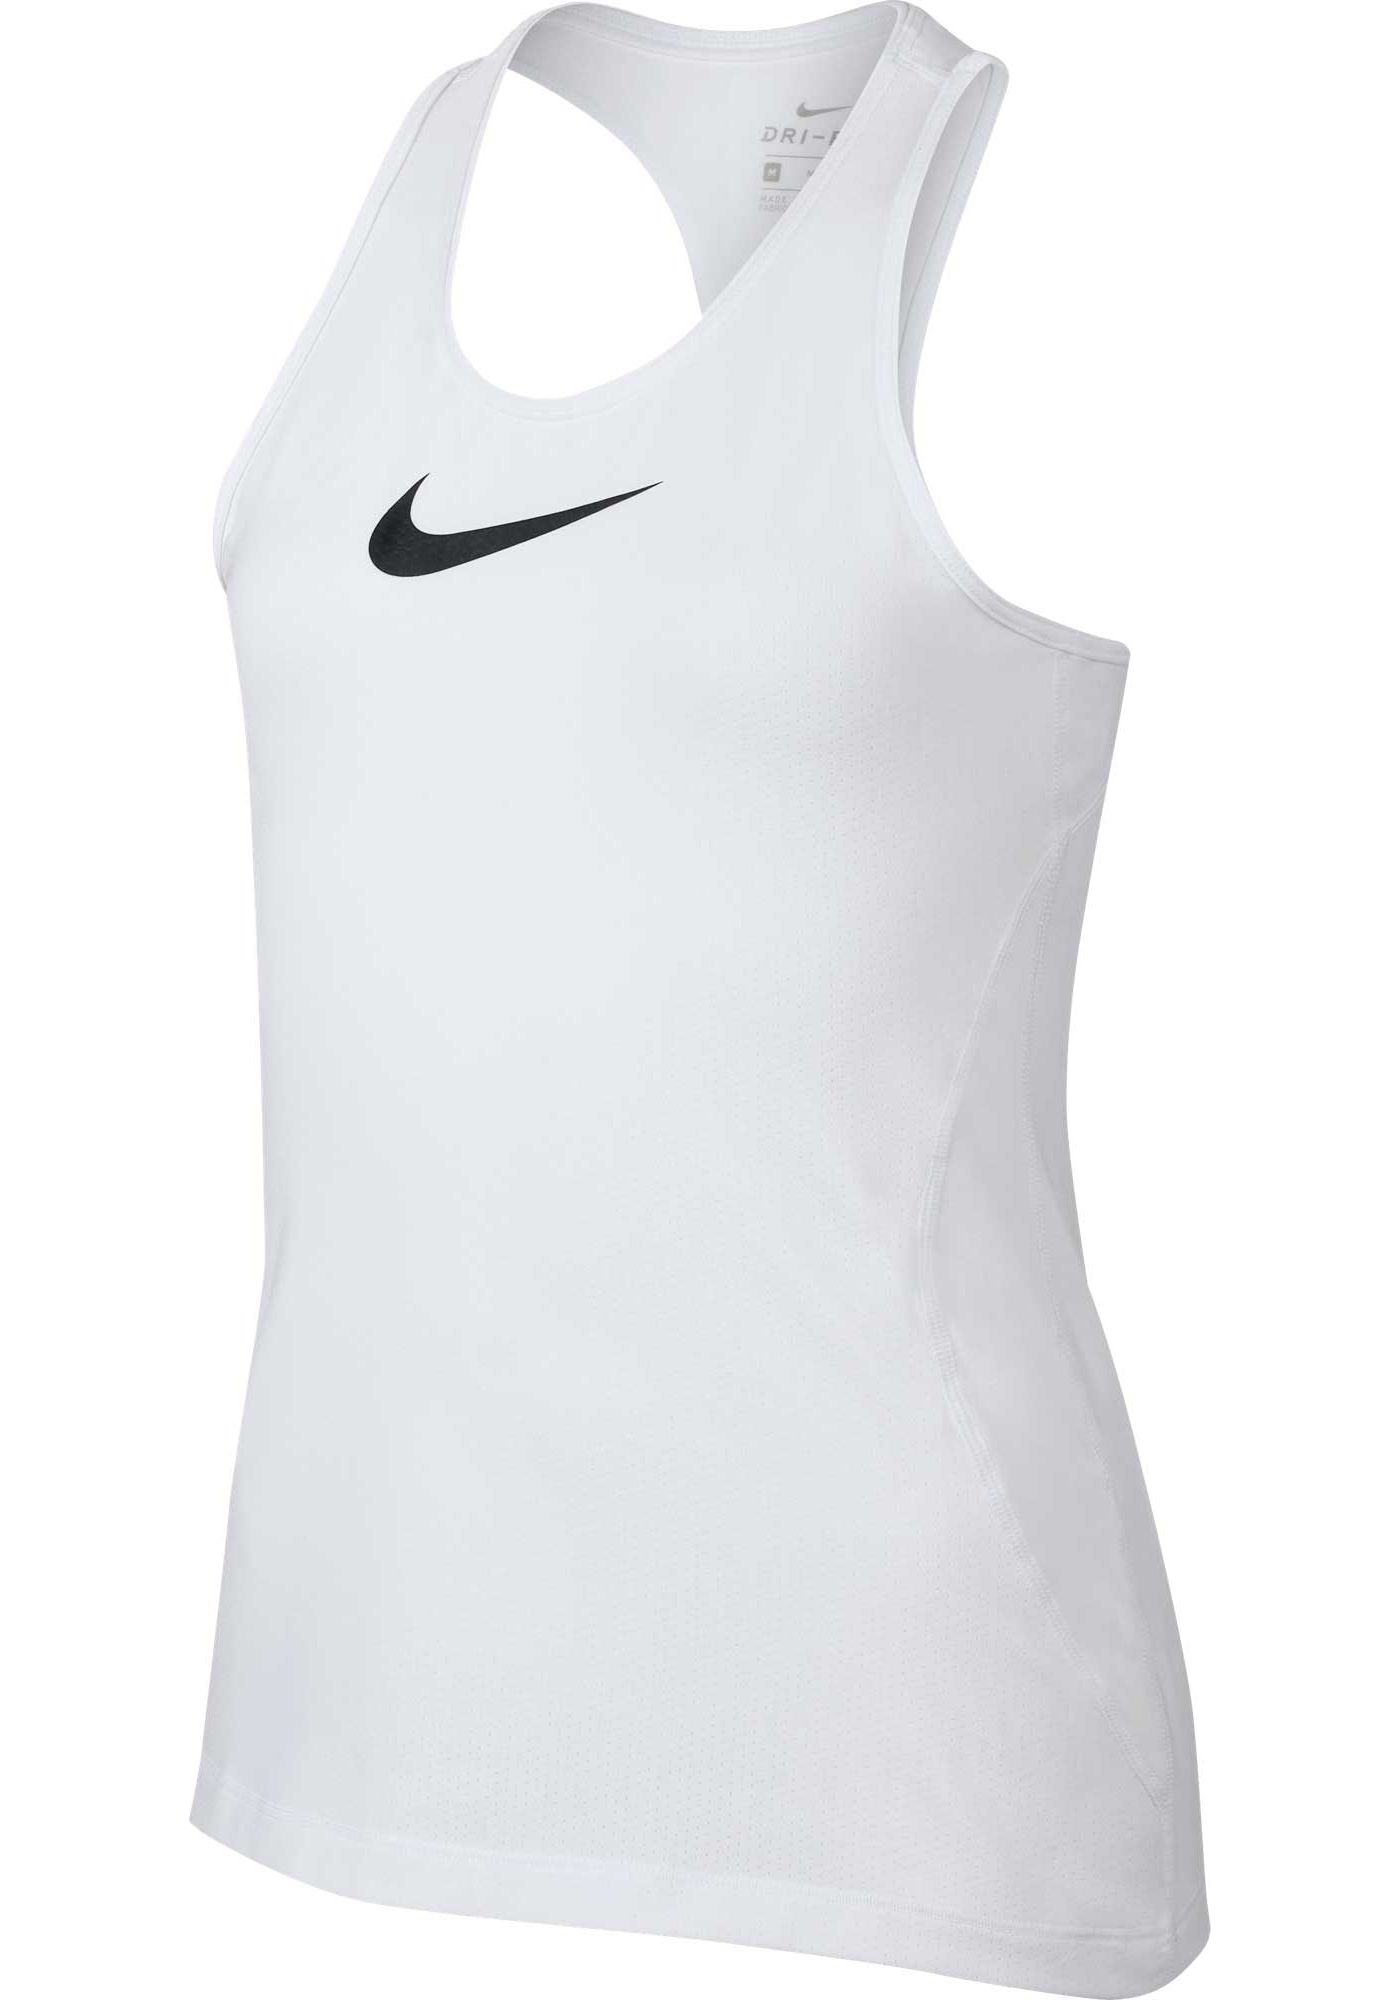 Nike Girls' Pro Dri-FIT Racerback Tank Top